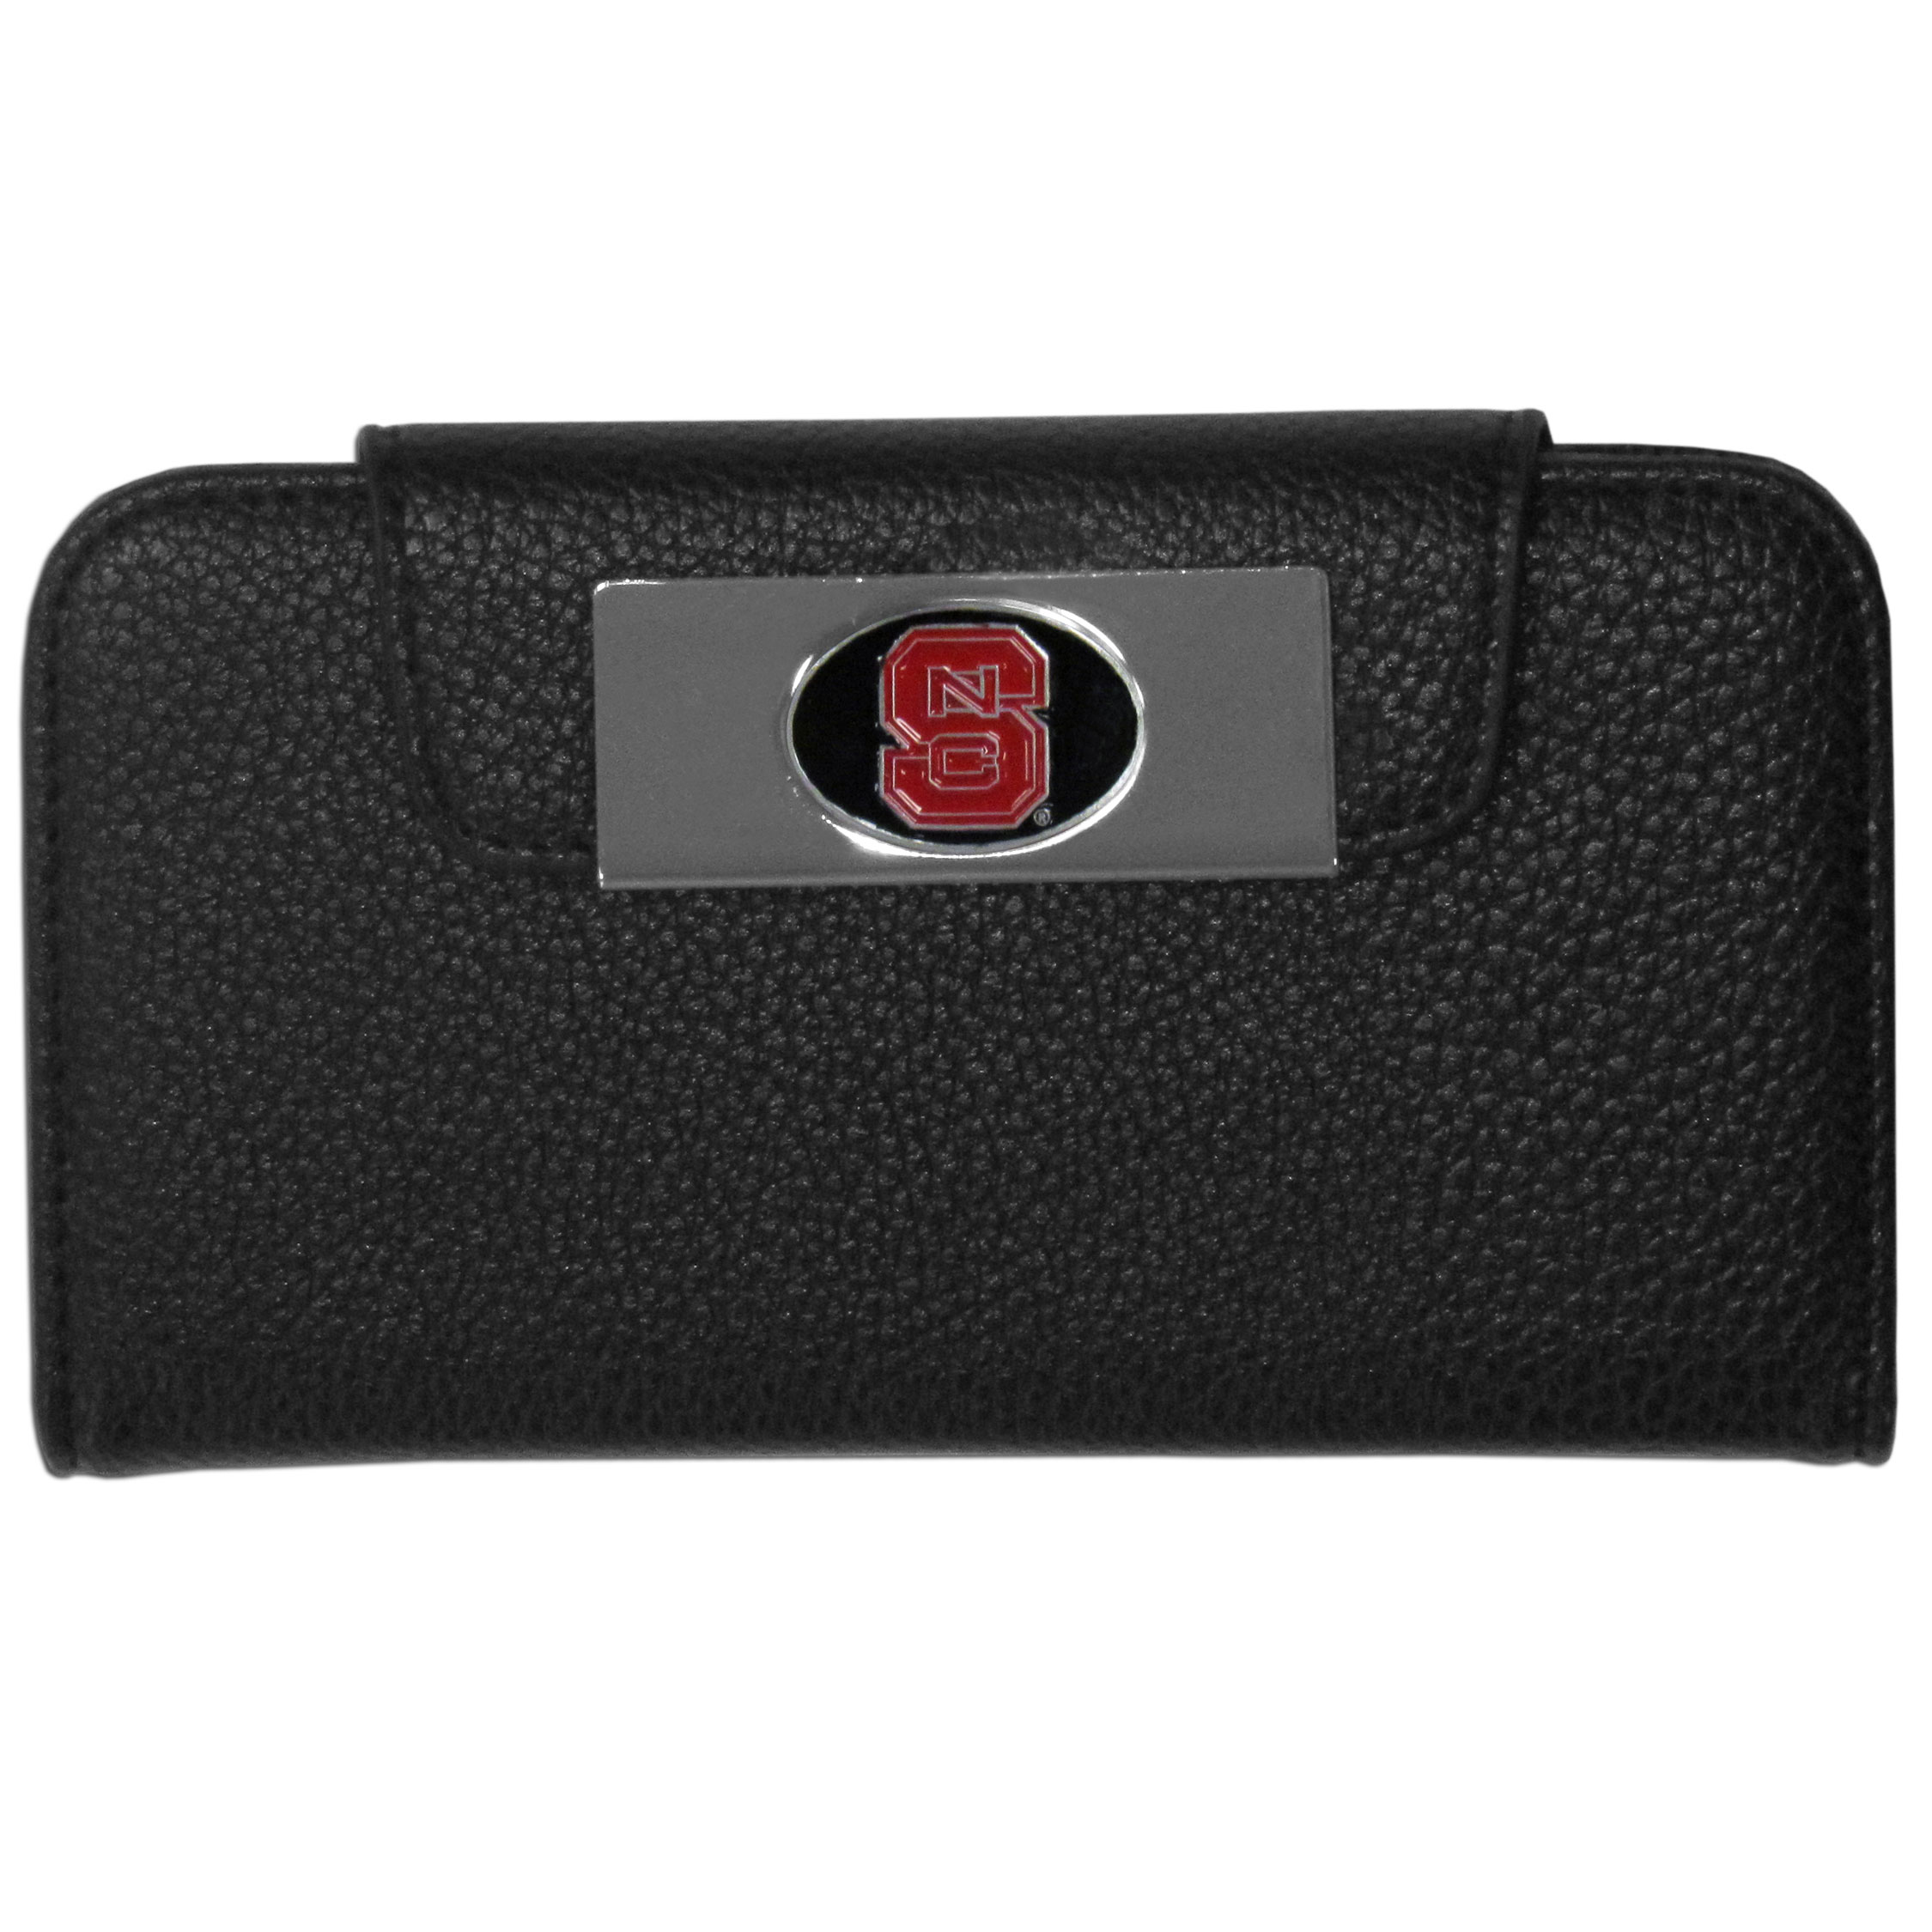 N. Carolina St. Wolfpack Samsung Galaxy S4 Wallet Case - This new & wildly popular case is ideal for those who like to travel light! The stylish case has an inner hard shell that securely holds your phone while allowing complete access to the phone's functionality. The flip cover has slots for credit cards, business cards and identification. The magnetic flip cover has a metal N. Carolina St. Wolfpack emblem on a high polish chrome backing. Fits the Samsung Galaxy S4